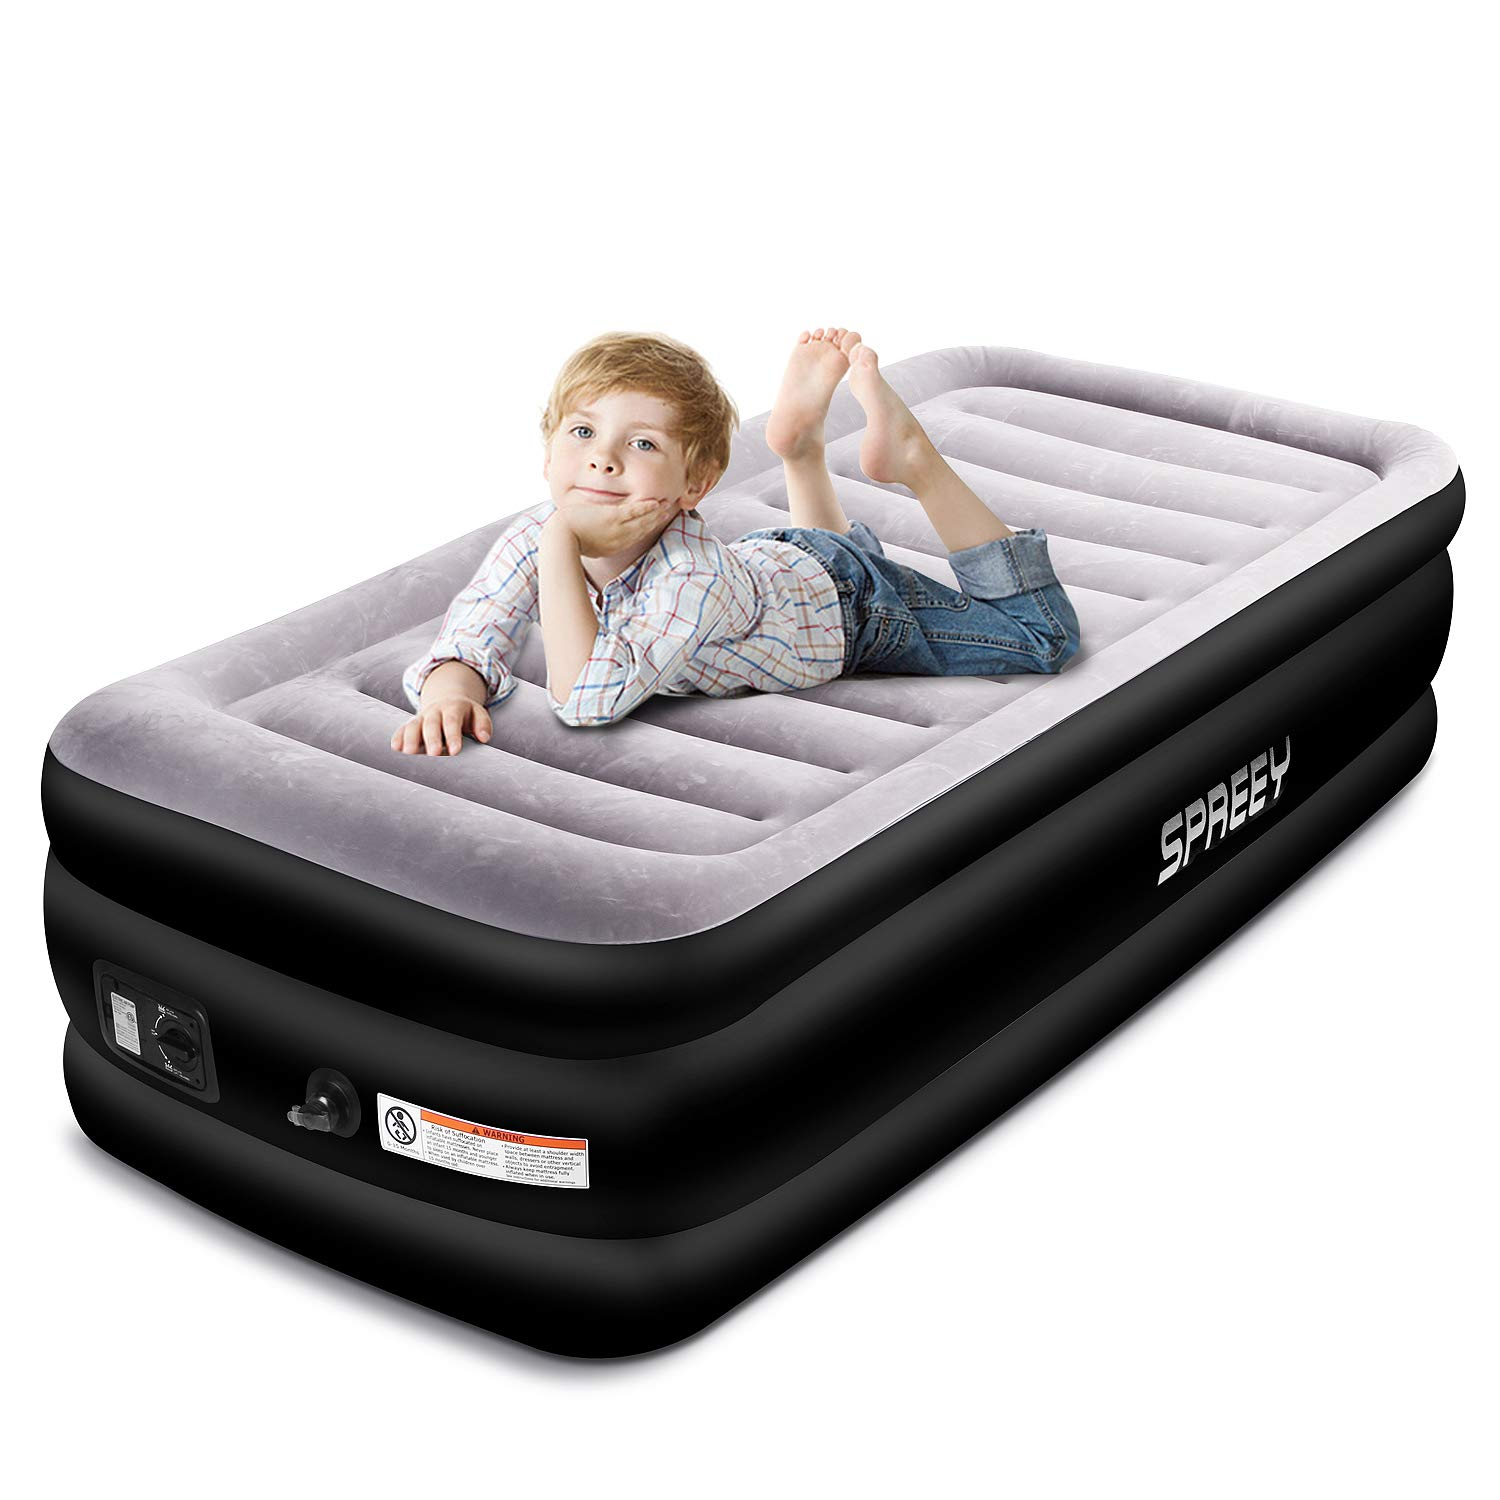 SPREEY Air Mattress Air Bed Comfort Coil Technology & Built-in Electric Pump, Twin Inflatable Mattress Bed Soft Flocking Layer Portable Equipped Storage Bag Black Twin (77 x 38 x 20 in)